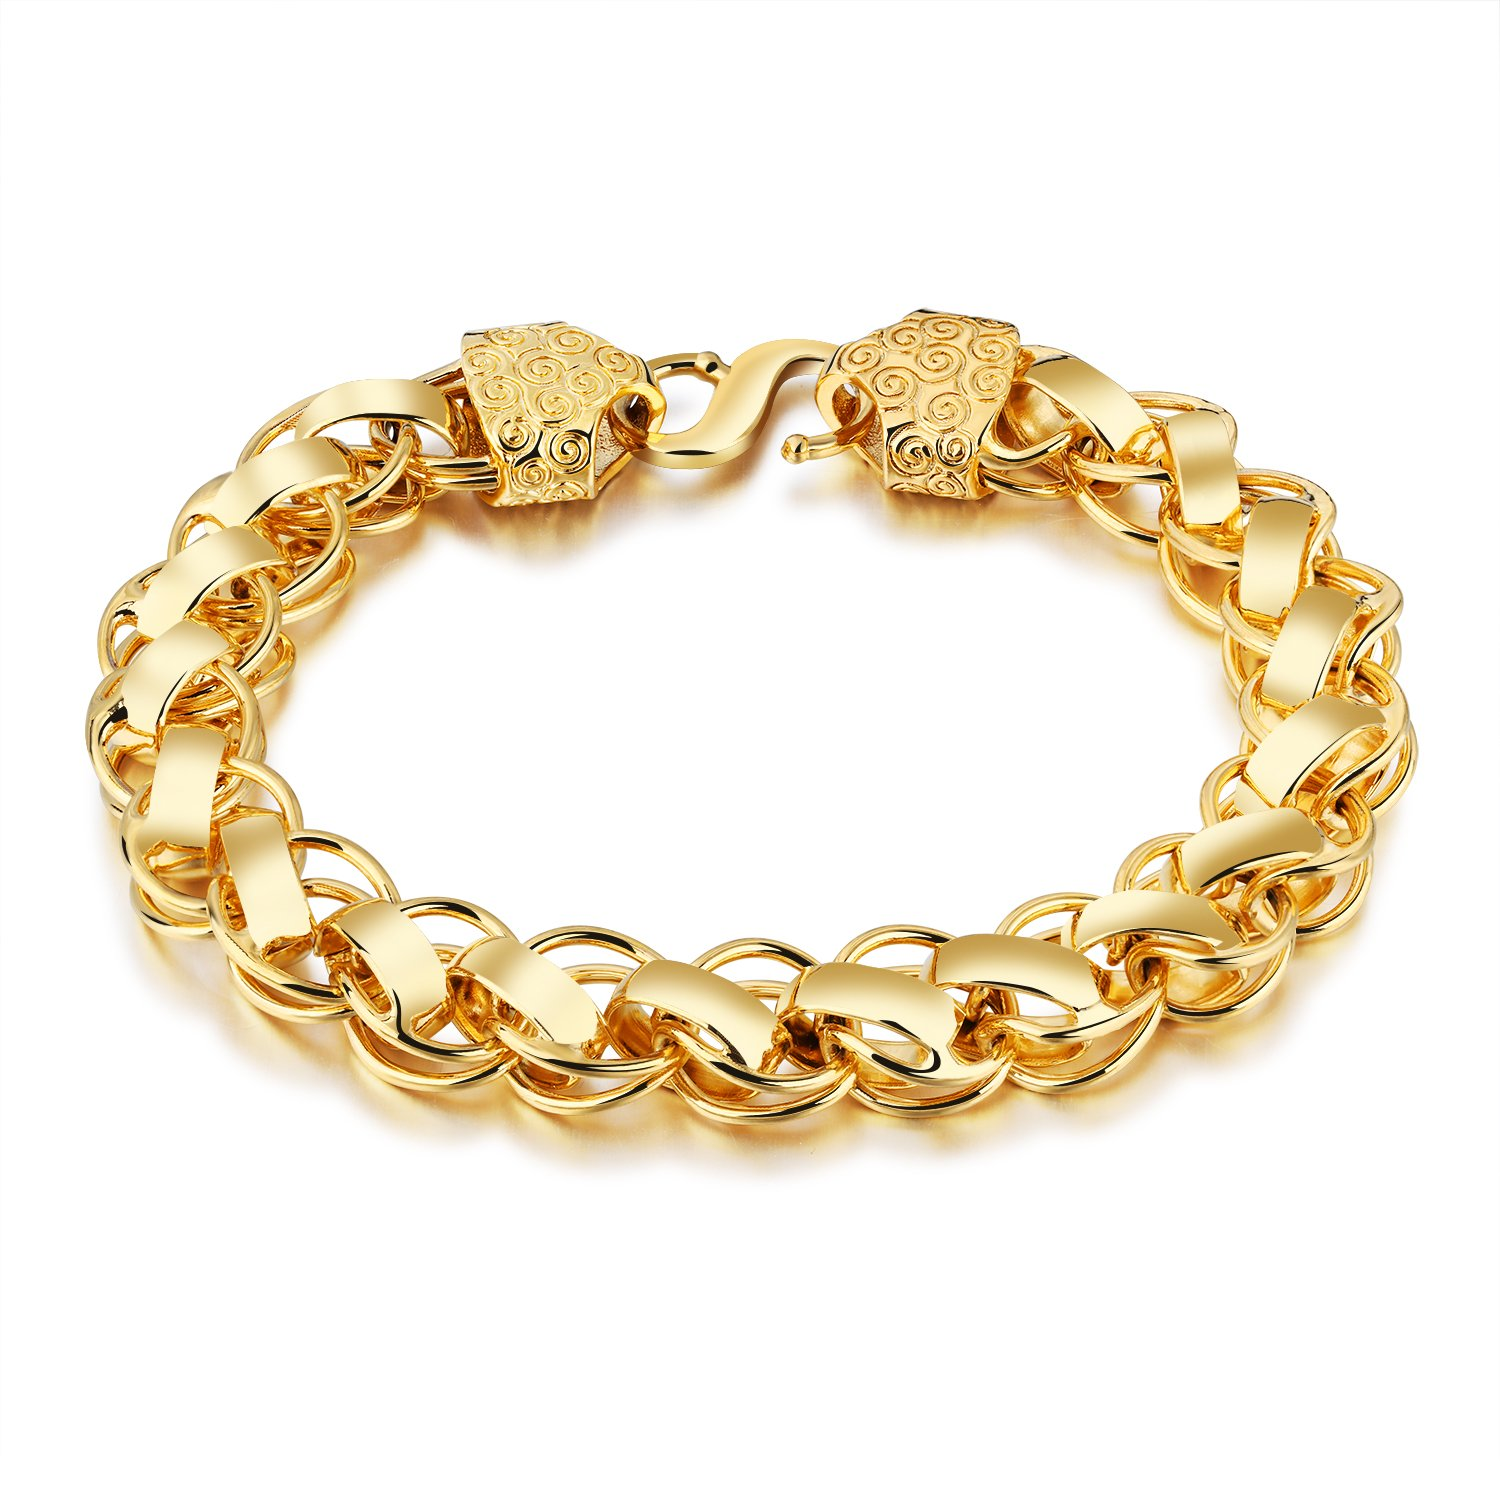 77c974ca7 OPK 18K Yellow Gold Plated 12mm Bracelet for Men with Chinese Lucky Cloud  Pattern, Hook Clasp, 8.27''